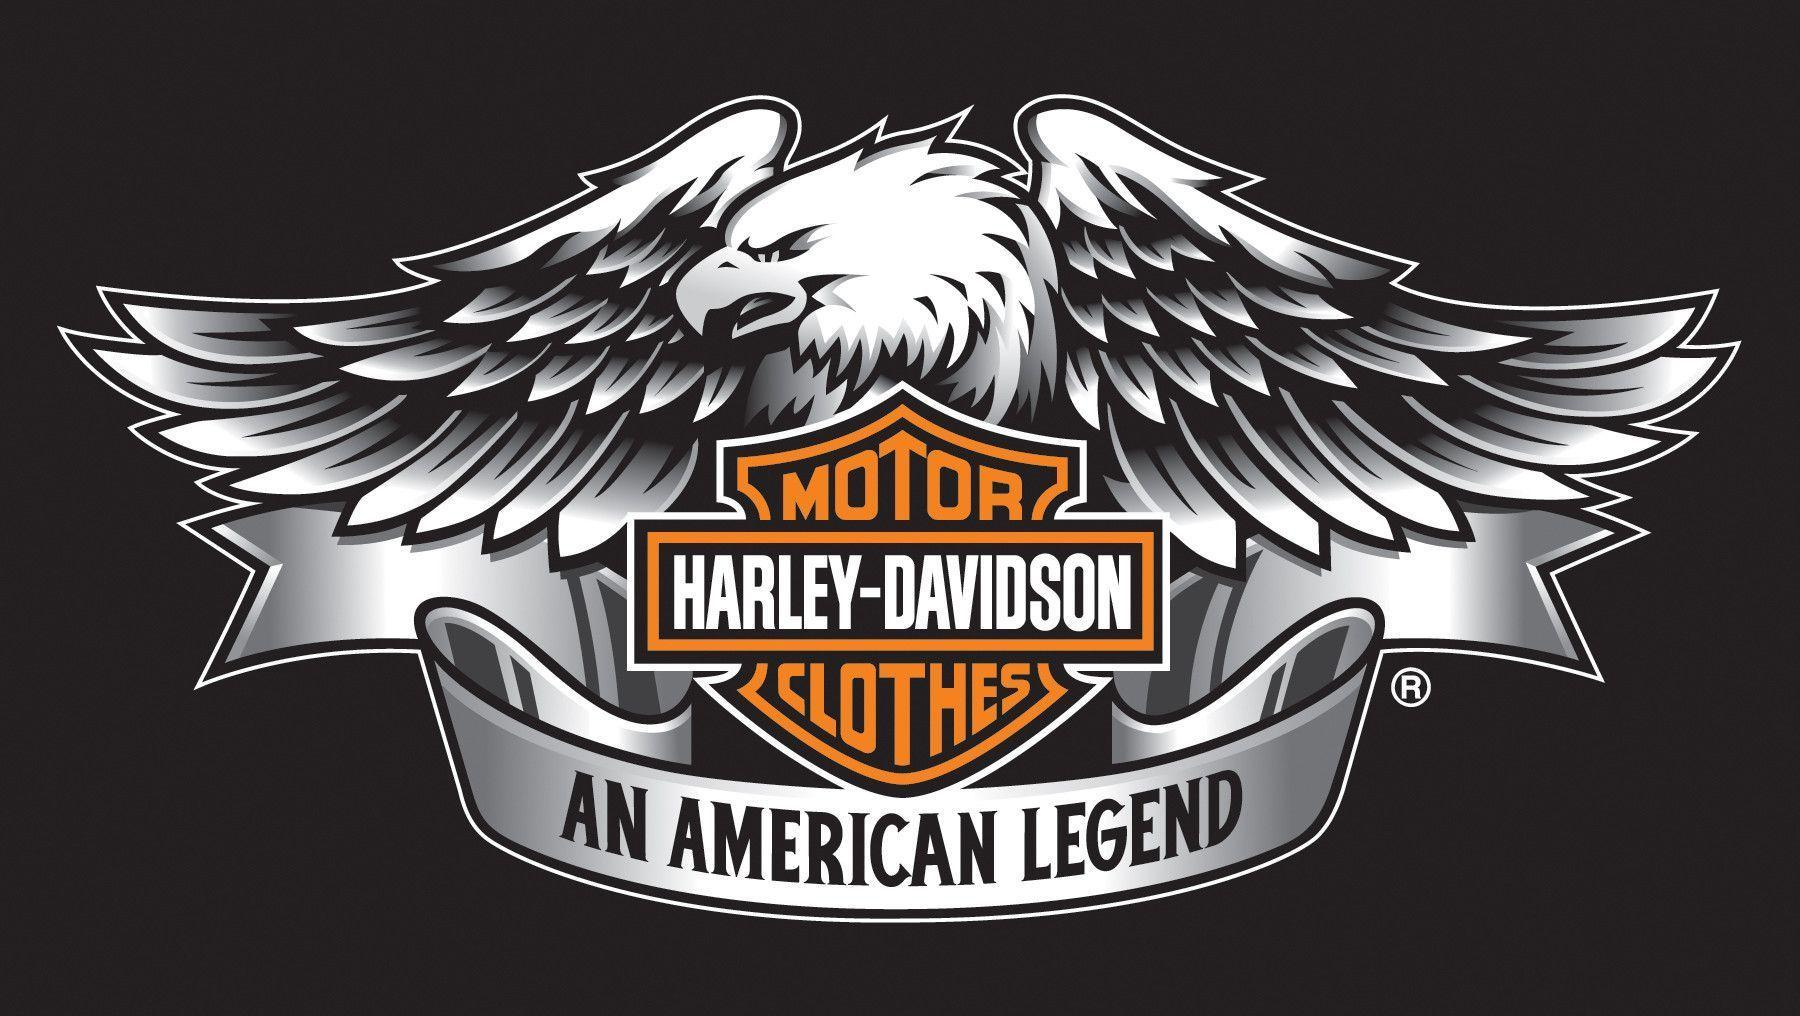 newest harley davidson logo wallpapers - photo #11